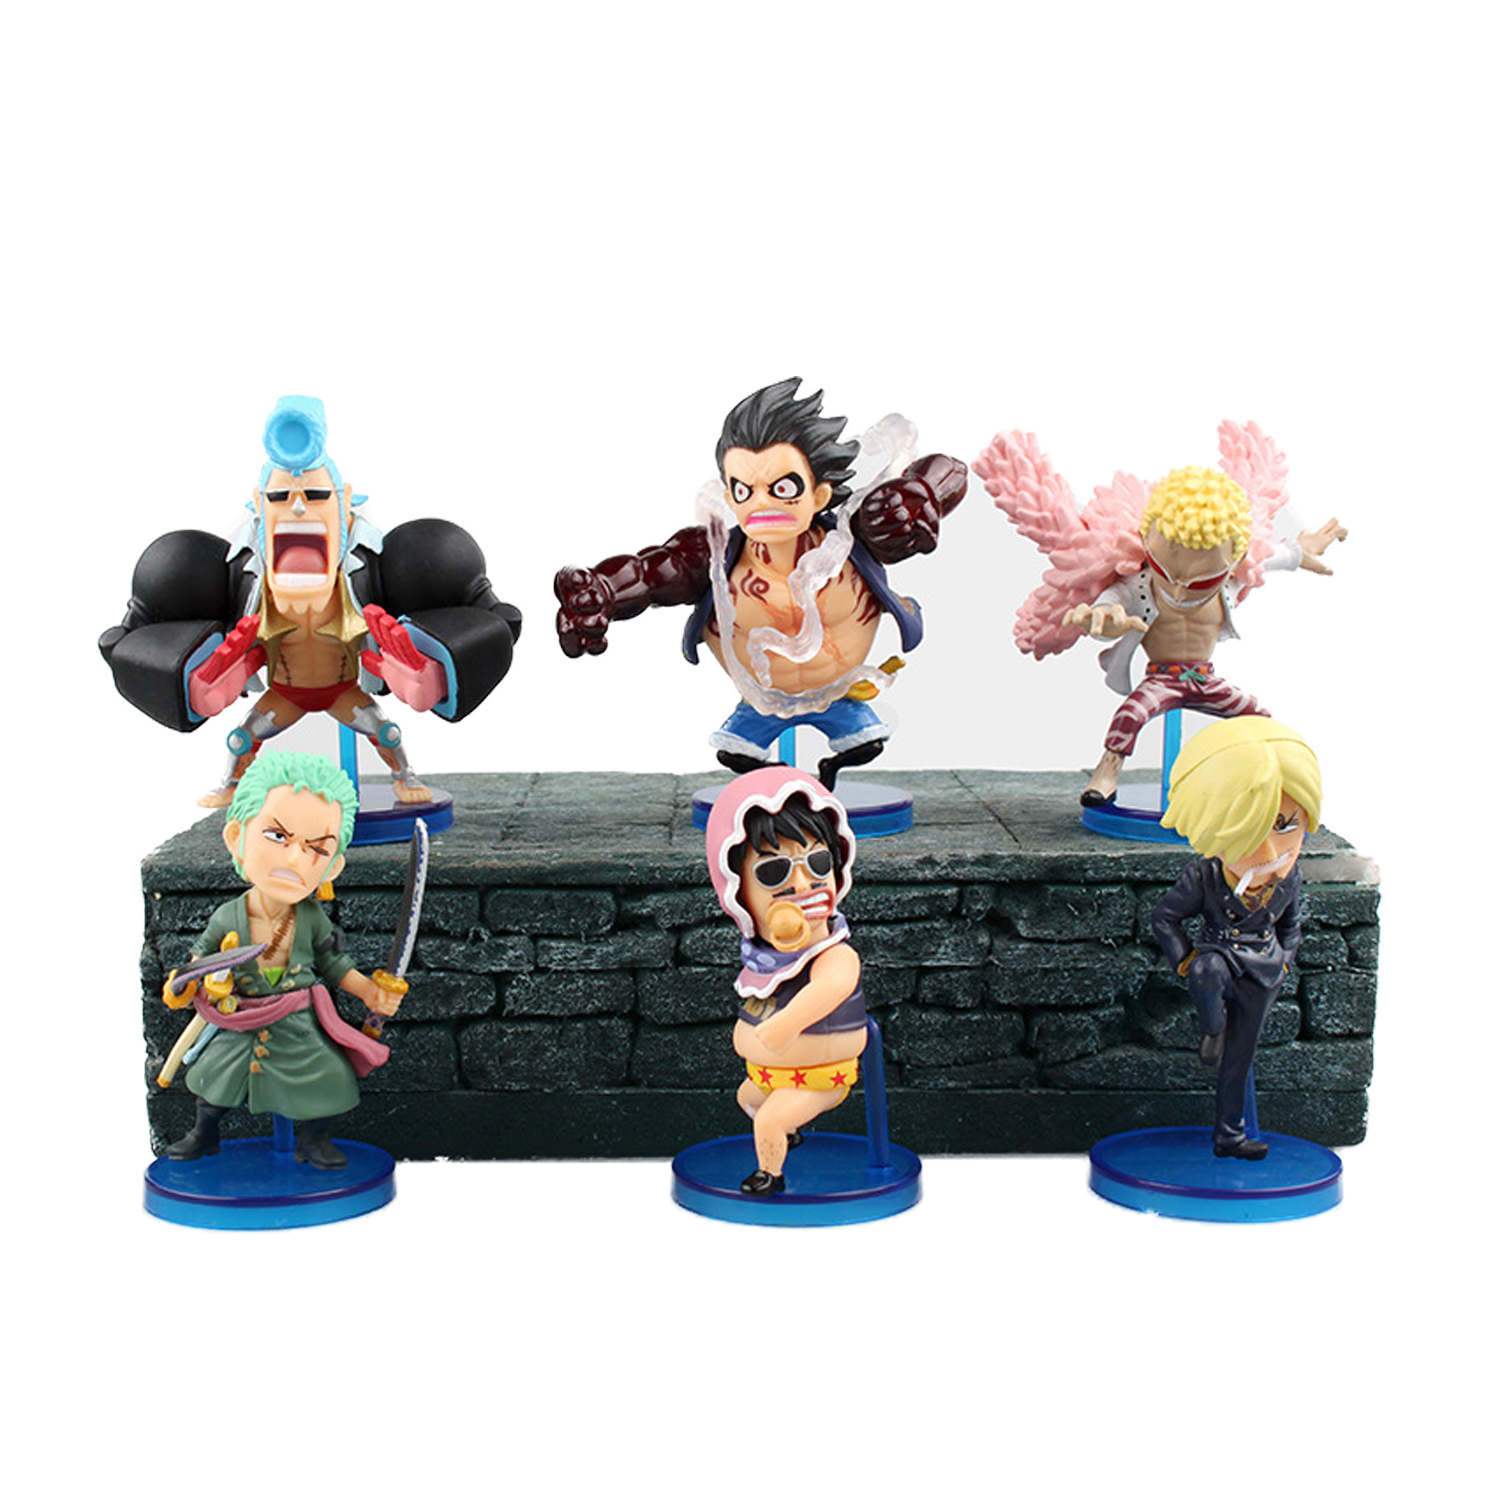 Chanycore Anime ONE PIECE 6pcs/set Luffy Zoro Nami Sanji robin Doflamingo 7cm Action Figures PVC onepiece toys doll model(China (Mainland))